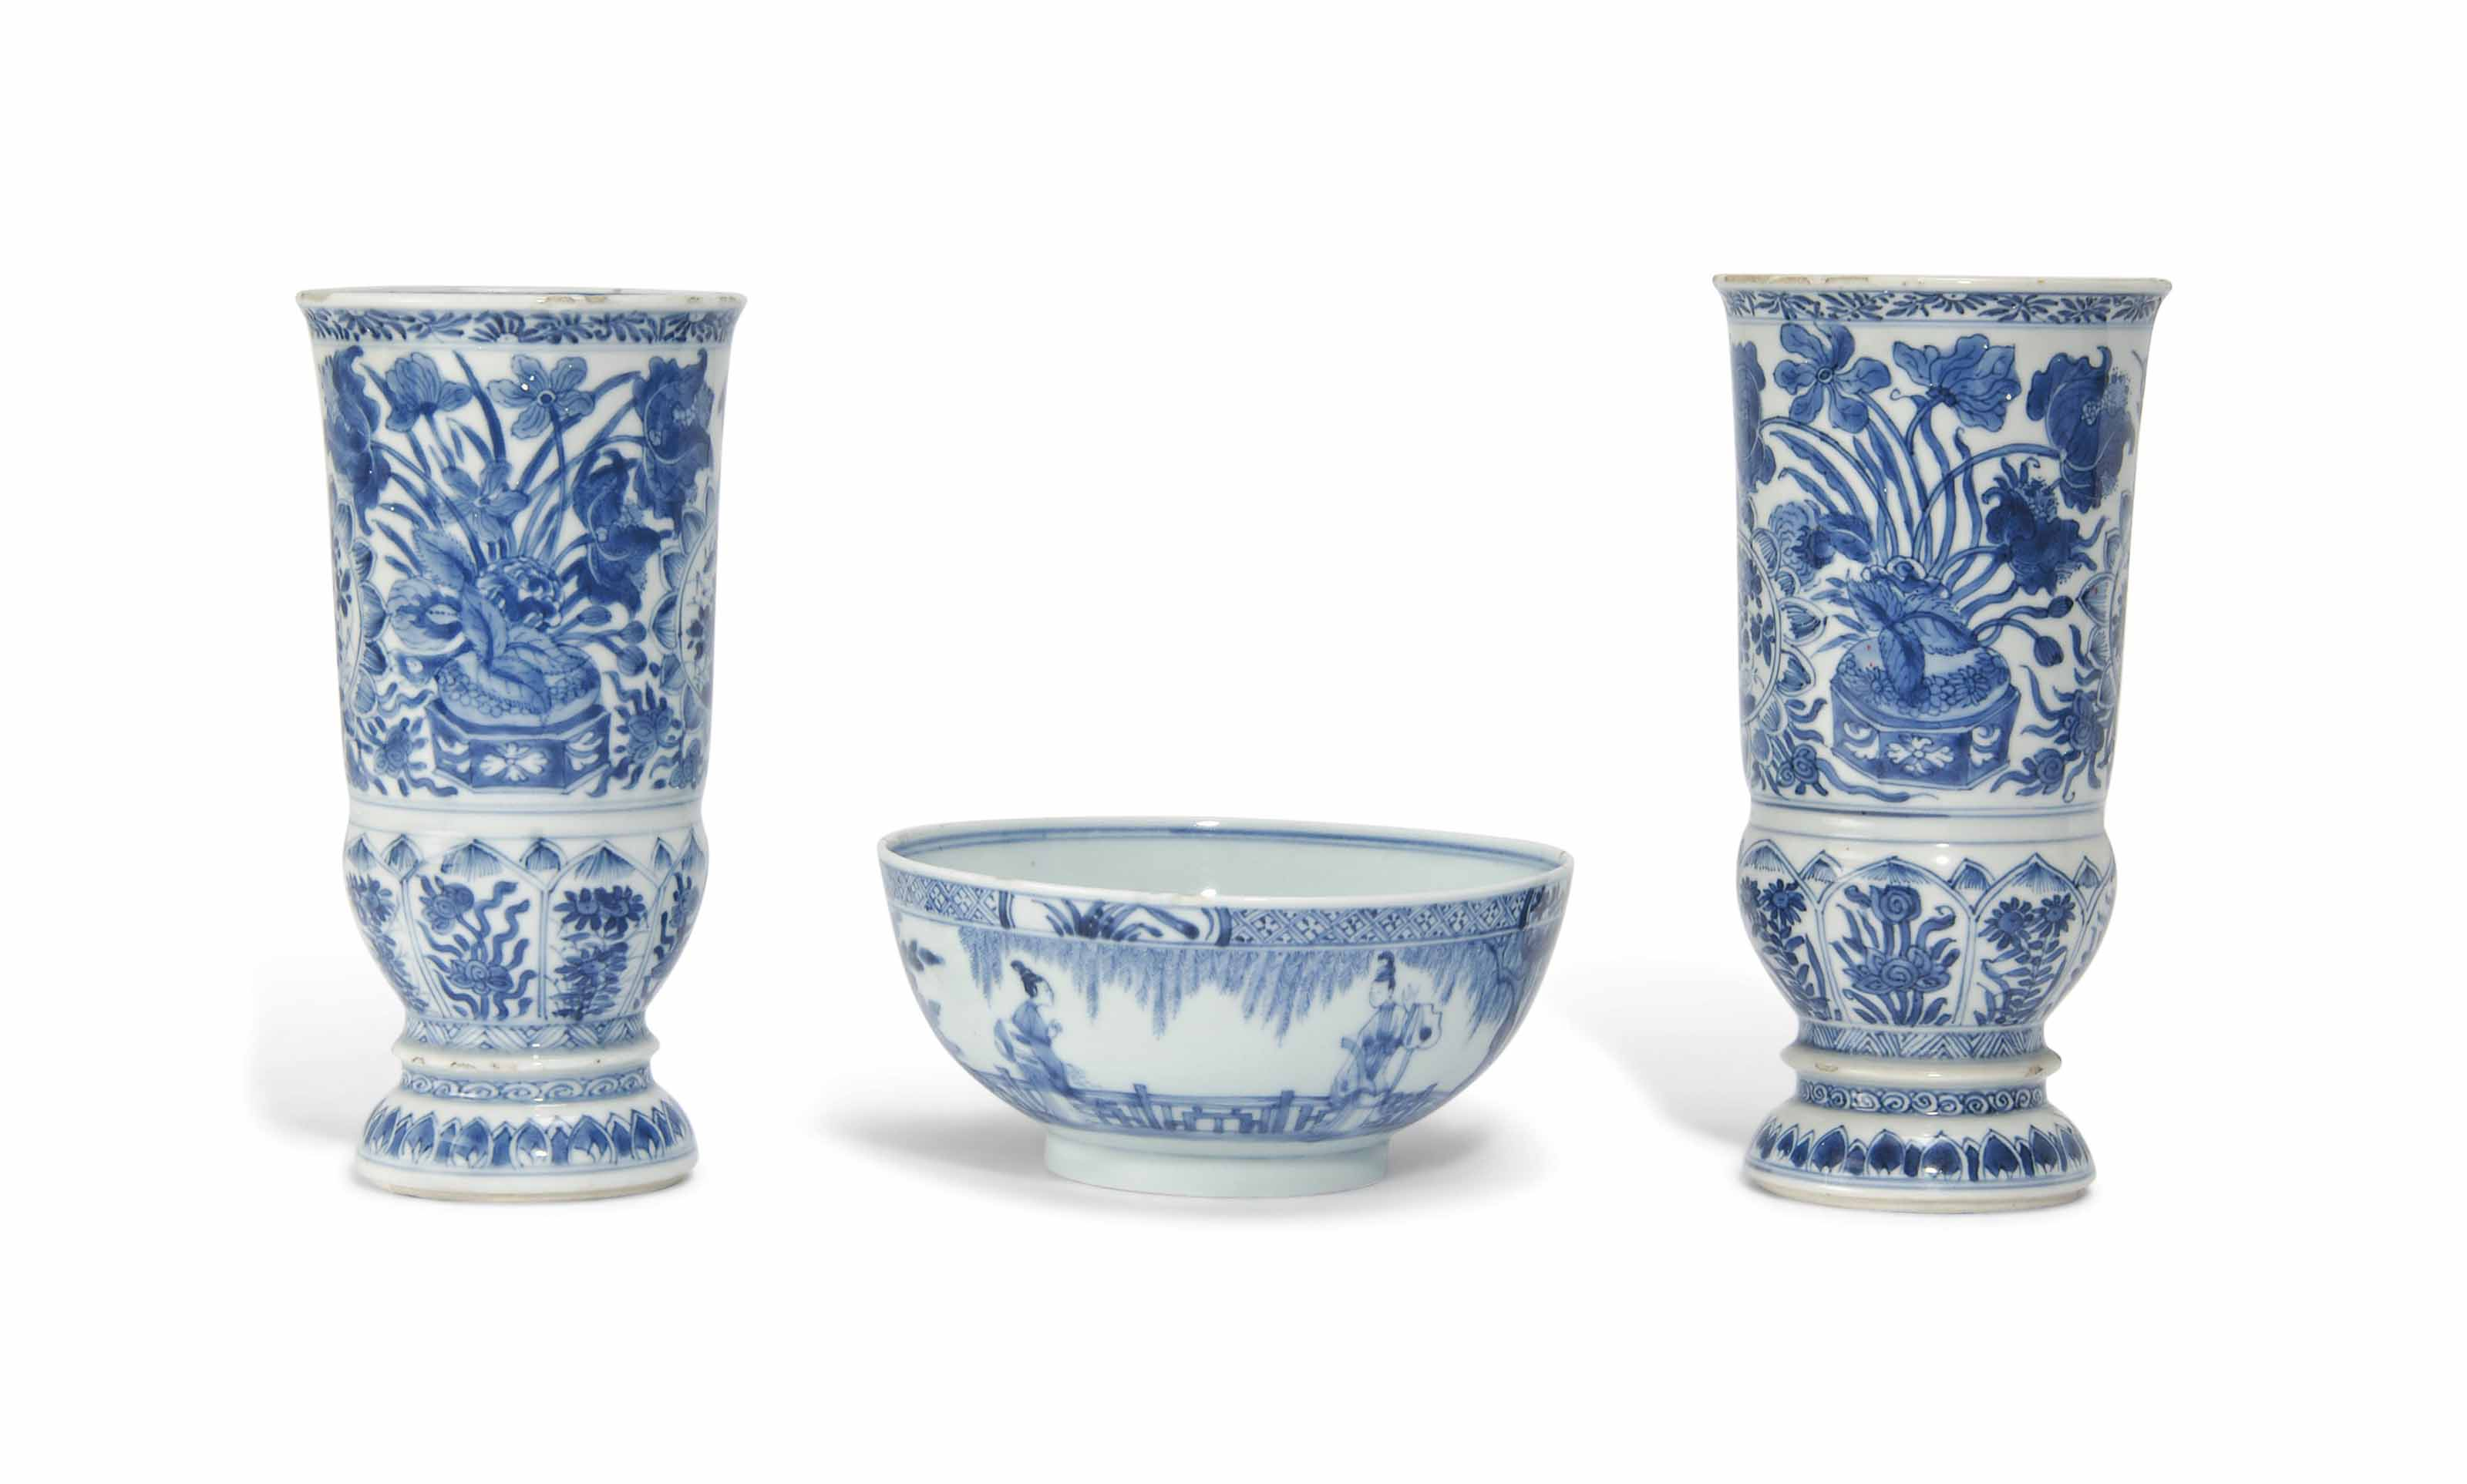 A MATCHED PAIR OF BLUE AND WHITE VASES AND A BLUE AND WHITE BOWL